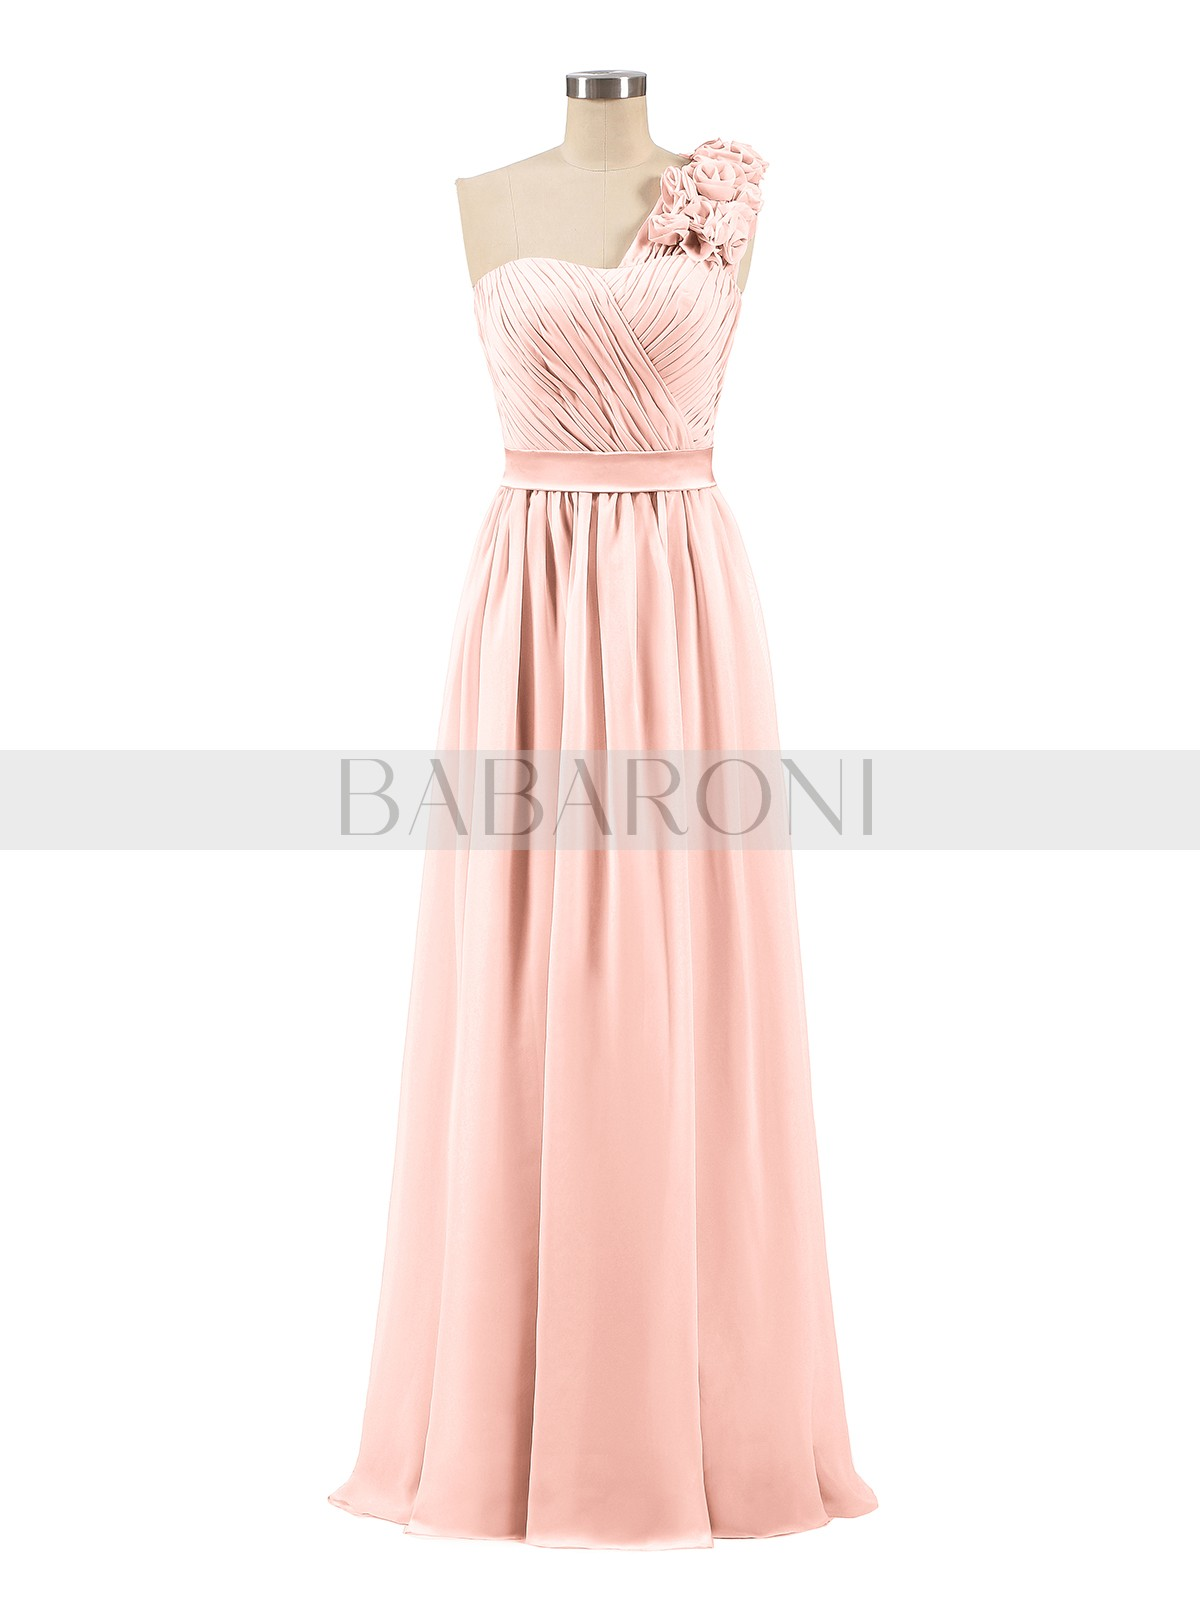 18ca9cba92 Coral Mirabelle One Shoulder Chiffon Dress with Flowers Strap